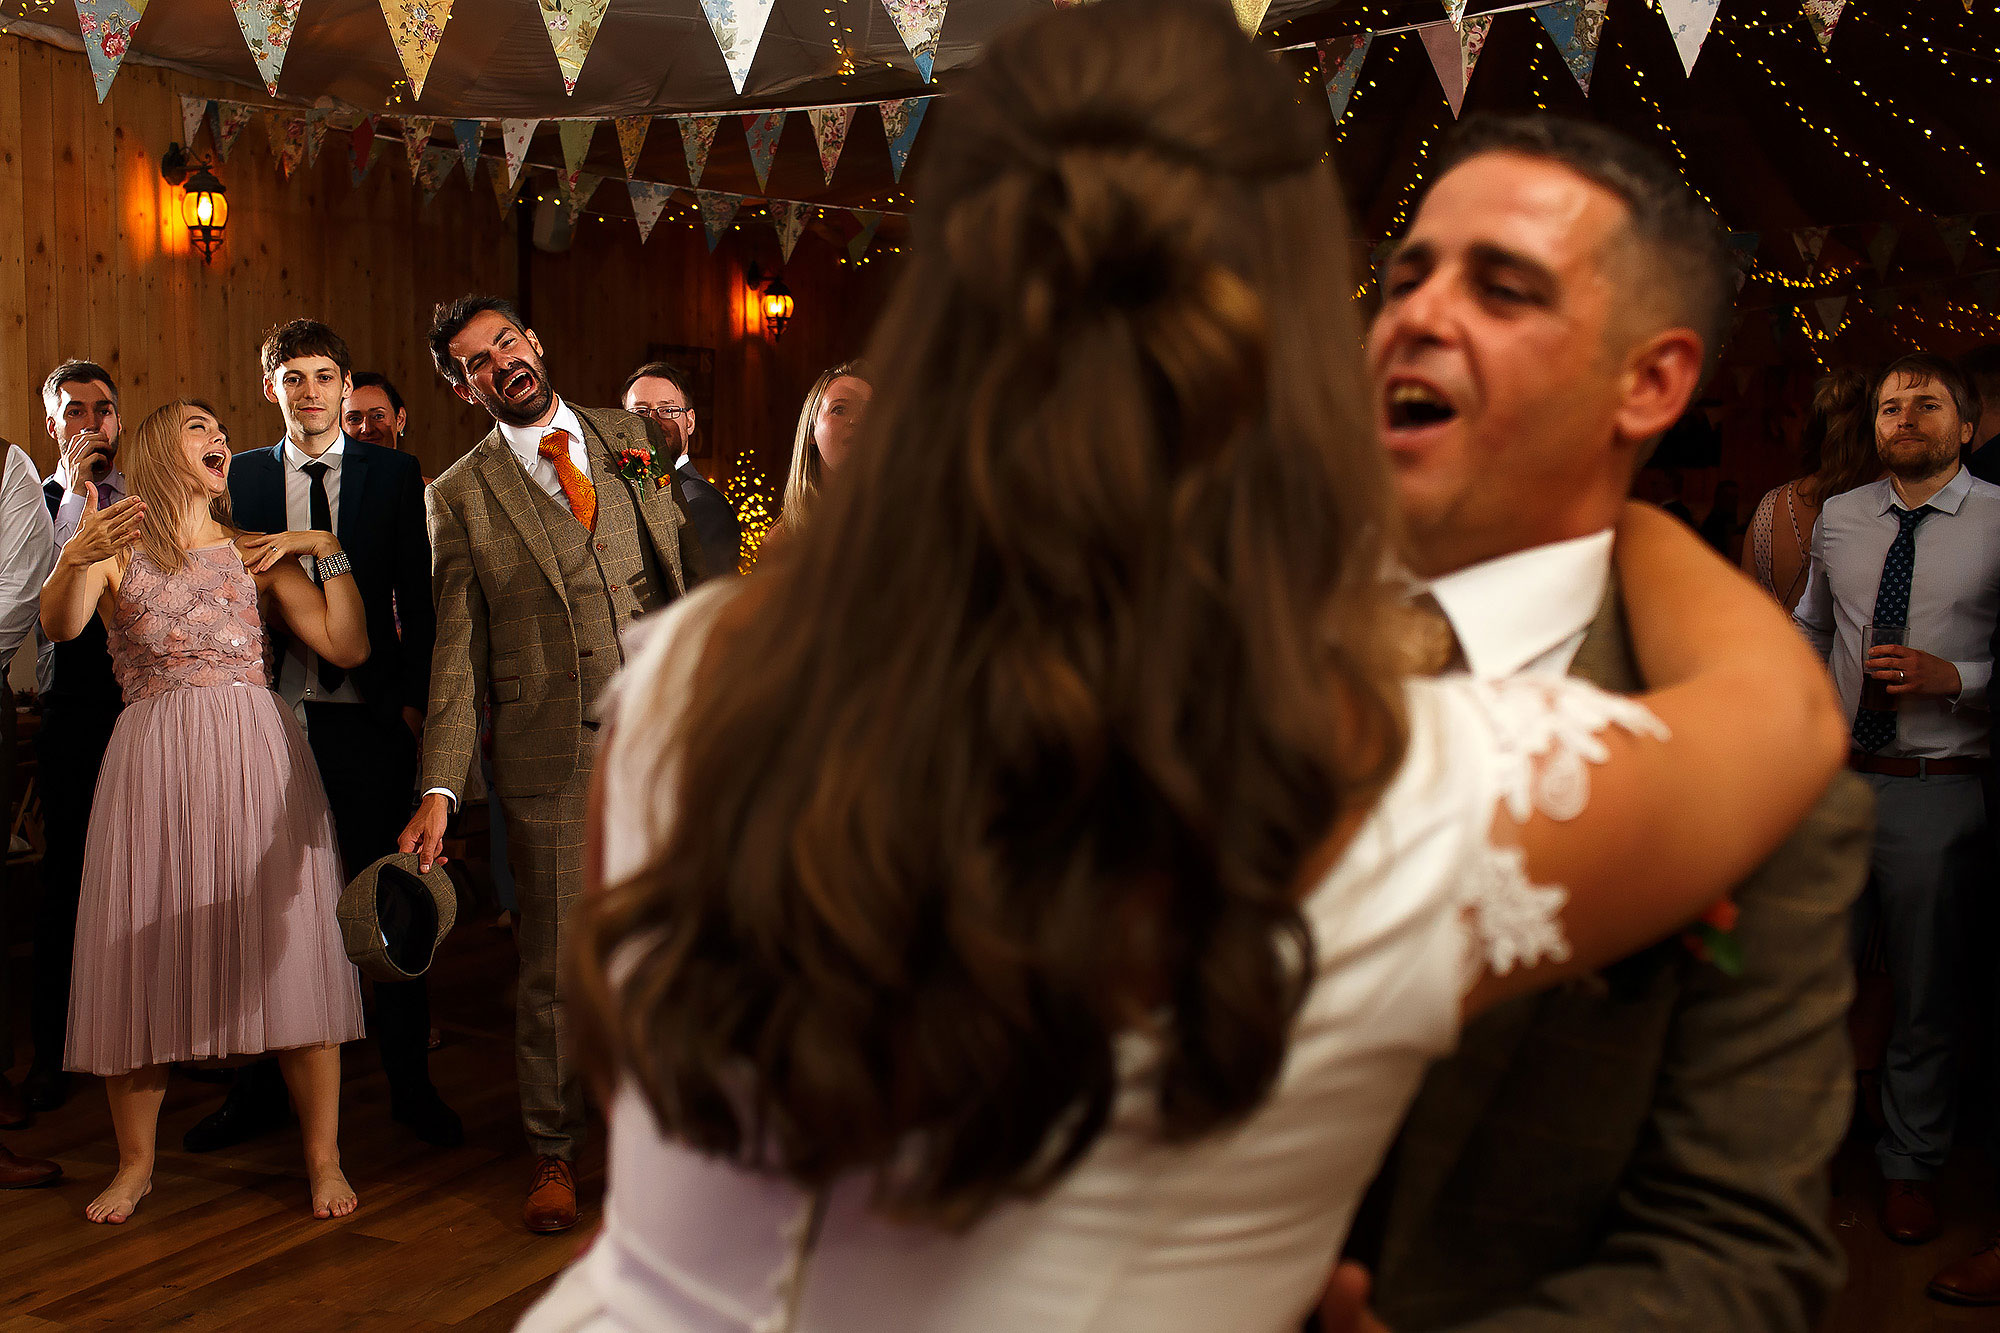 Bride dancing with her father as the wedding guests look onward singing | Wellbeing Farm wedding photographs by Toni Darcy Photography